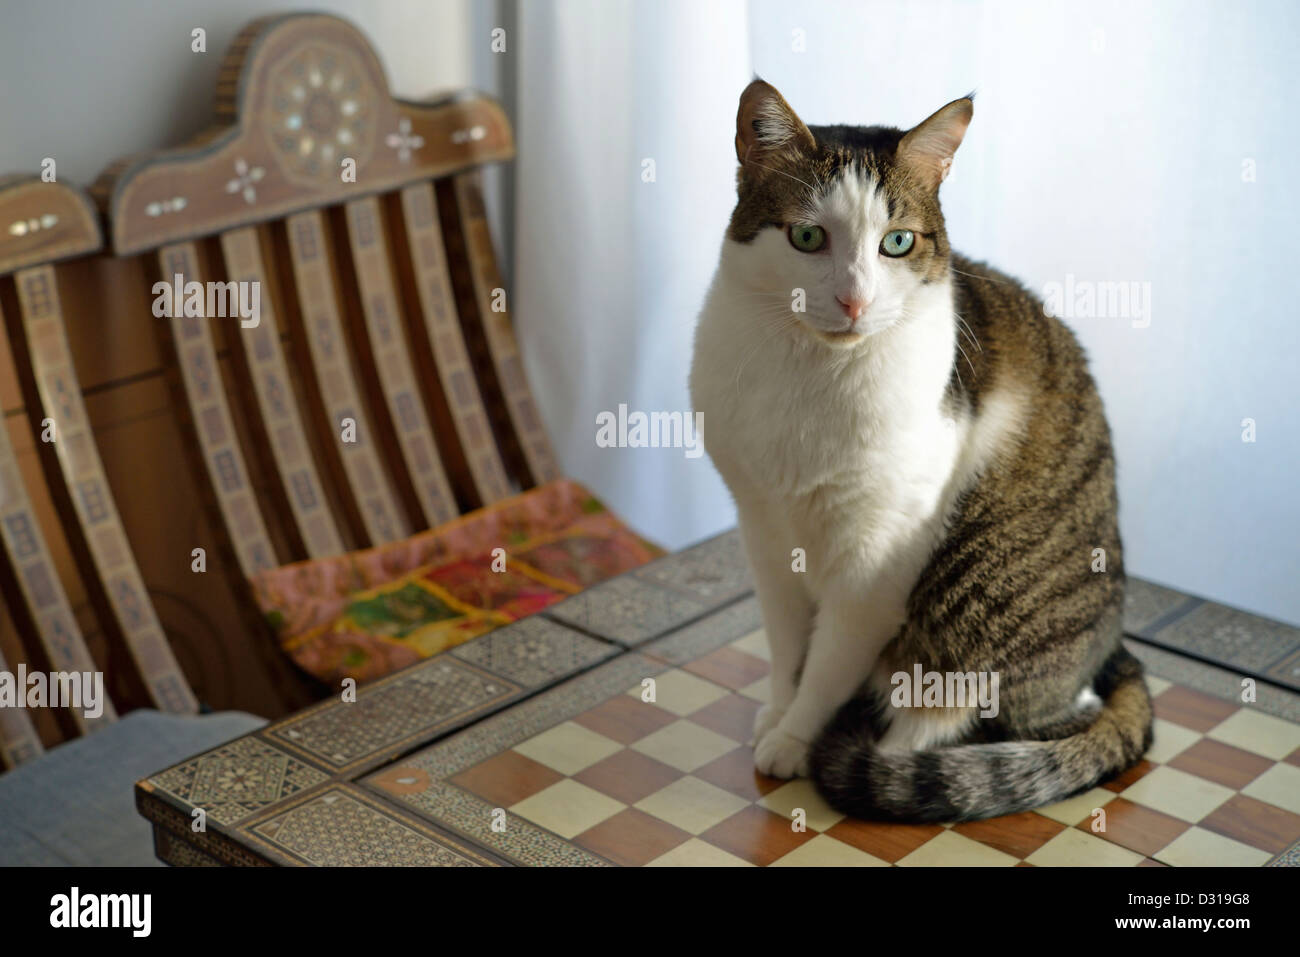 Cat sitting on a table inside - Stock Image